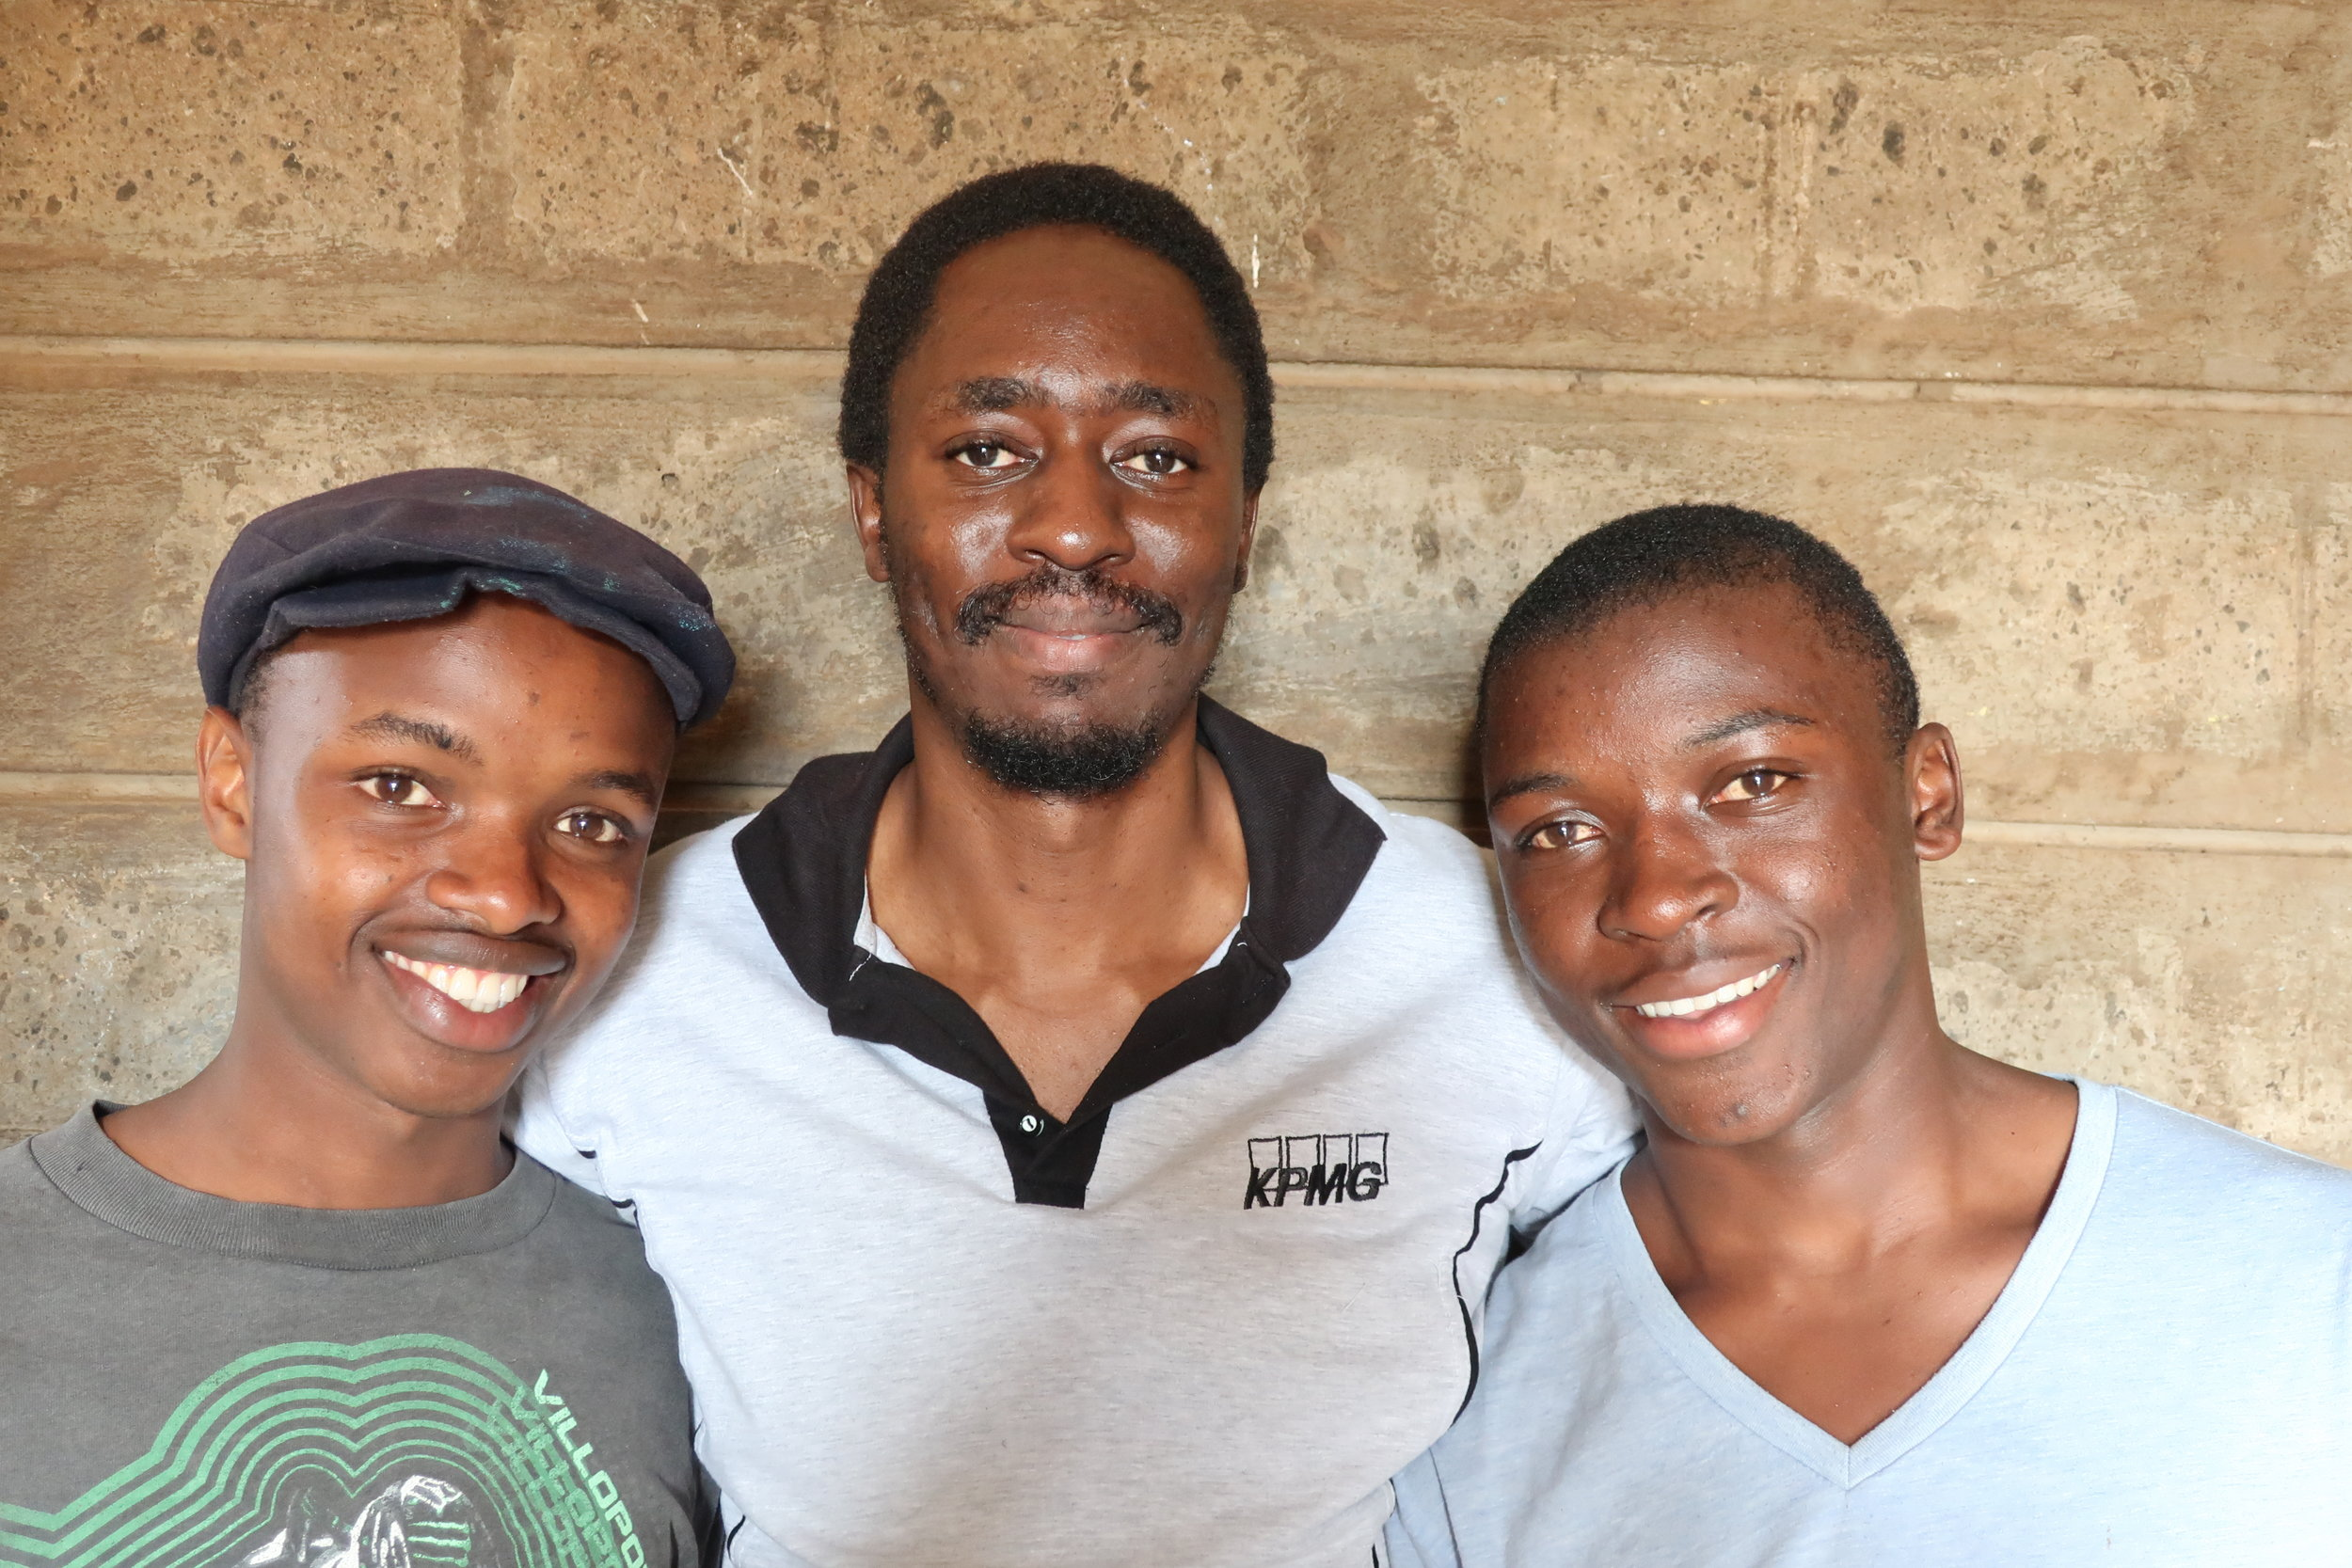 Luchiri Omoto - Luchiri is our Kenya Director, pictured here (center) with two of our seondary students. Luchiri is vital to Kawangware Kids, volunteering his time to oversee operations.